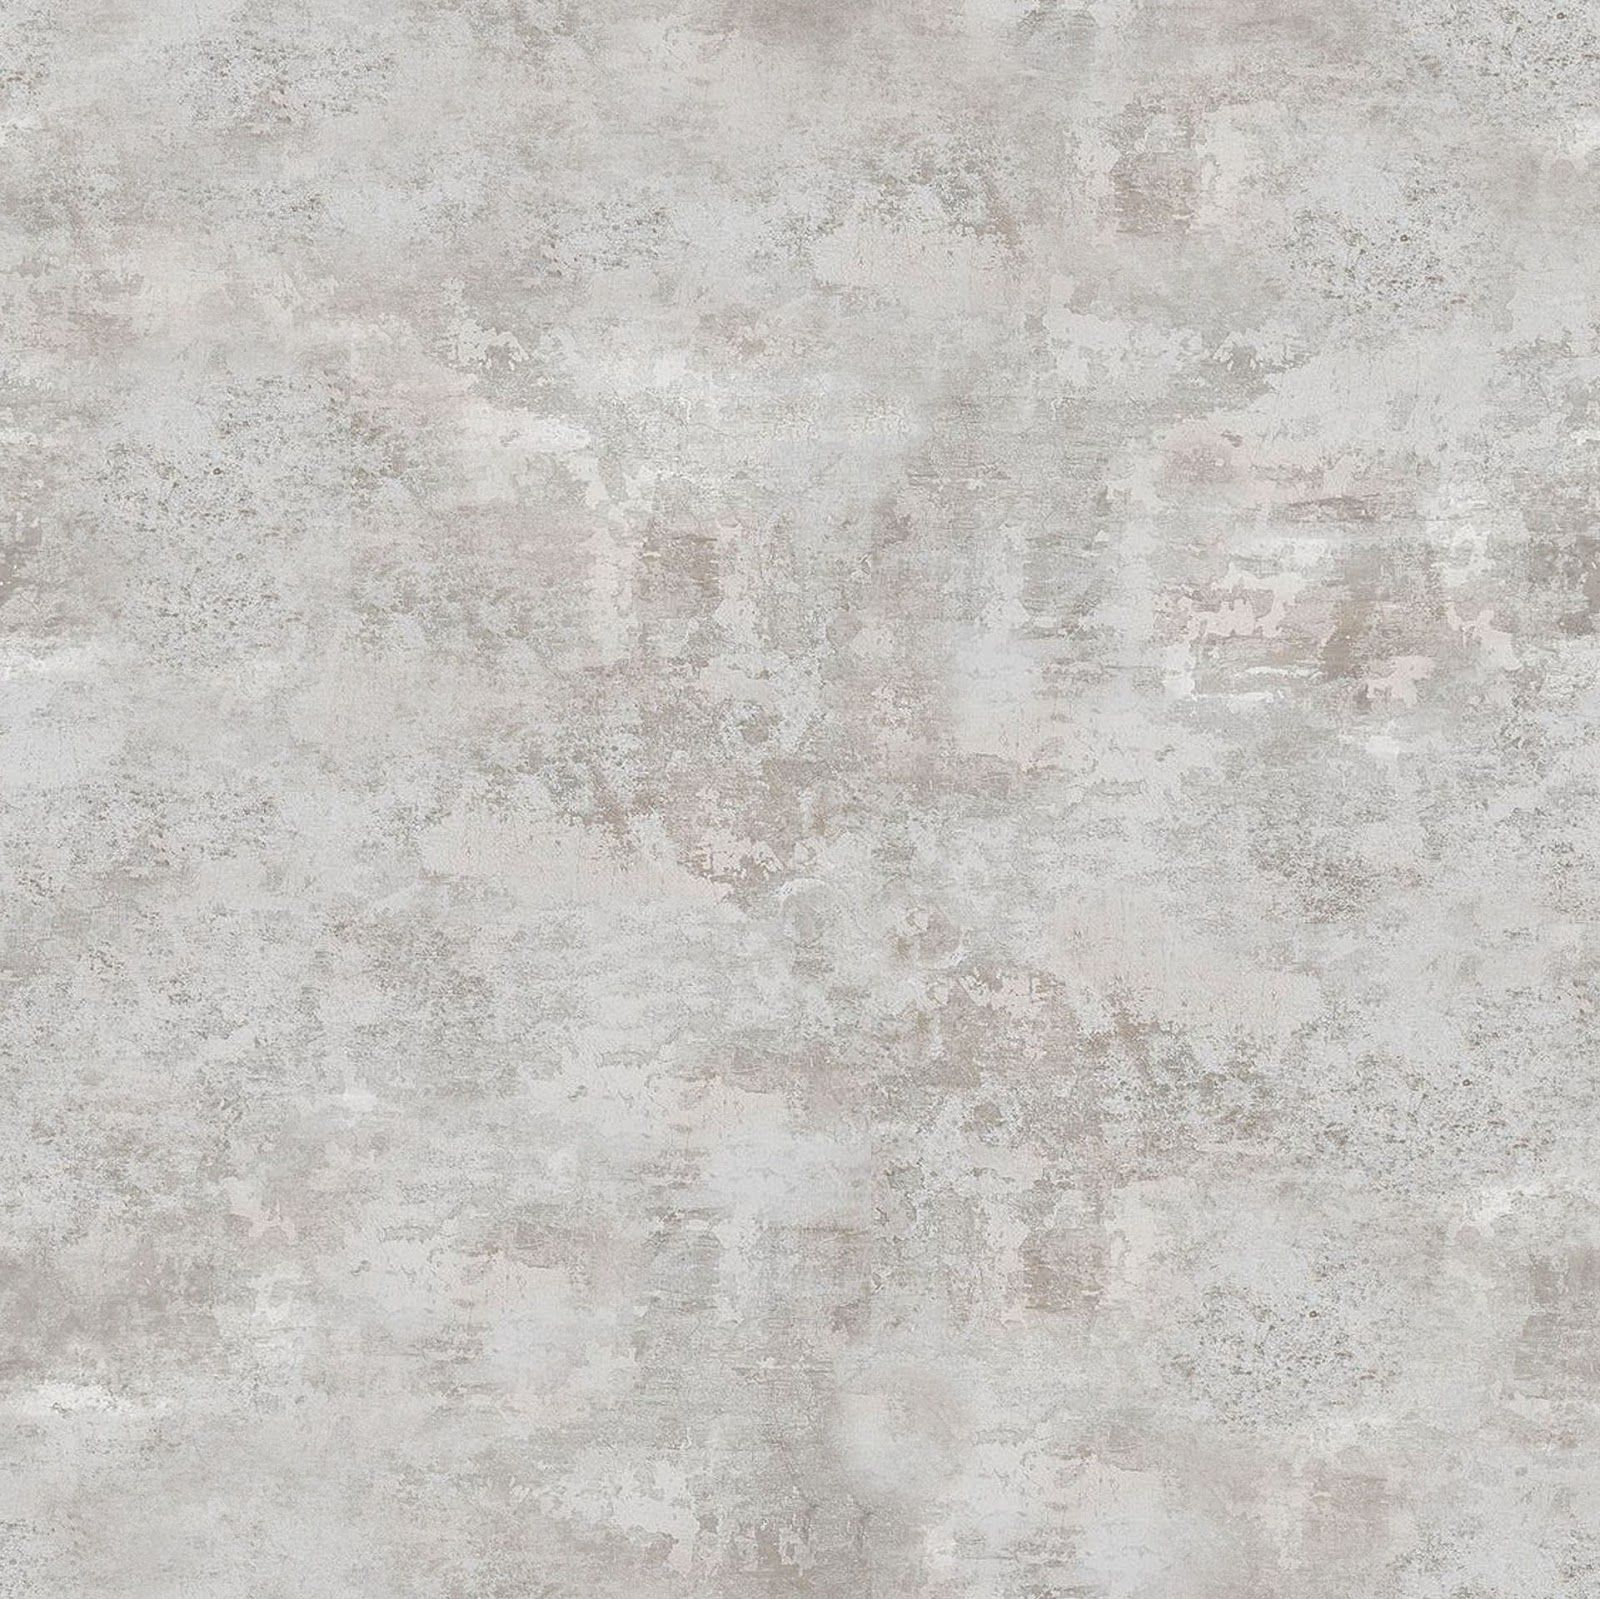 Seamless Dirty Concrete Wall Texture | Texturise Free ...